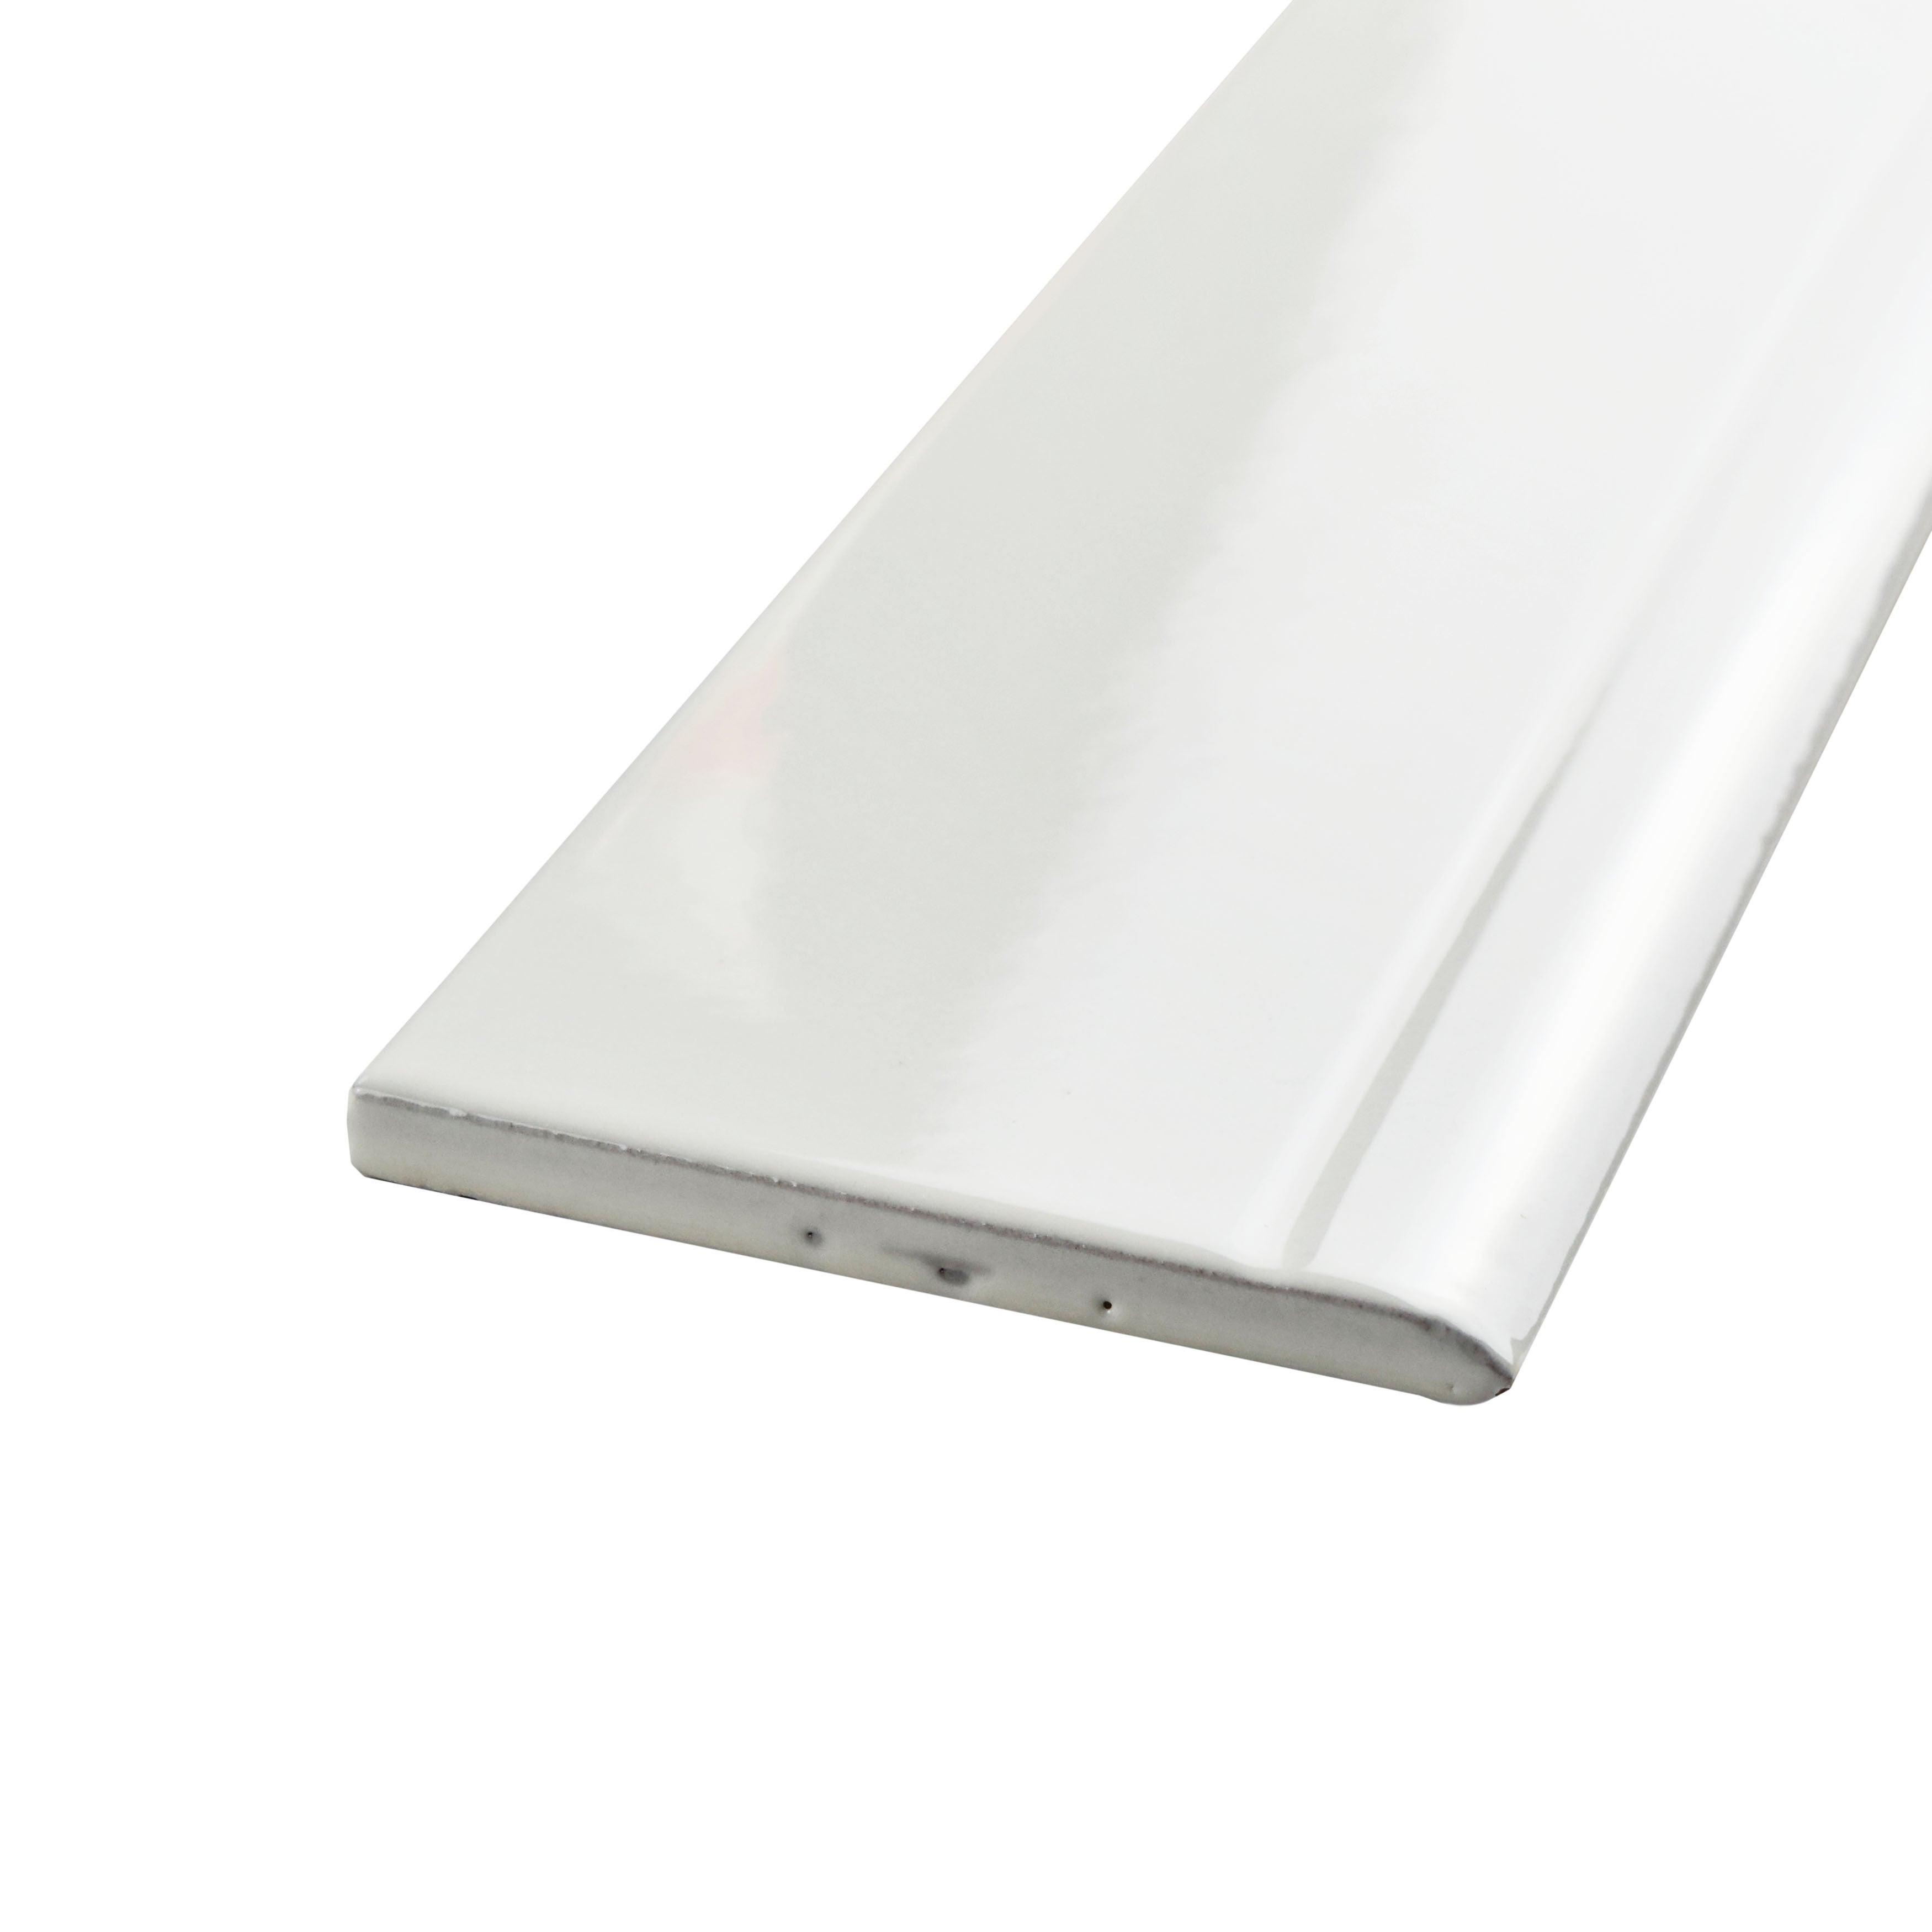 Somertile 3 25x12 375 Inch Zocalo Glossy White Ceramic Base Trim Molding 25 Tiles Free Shipping Today 11483297